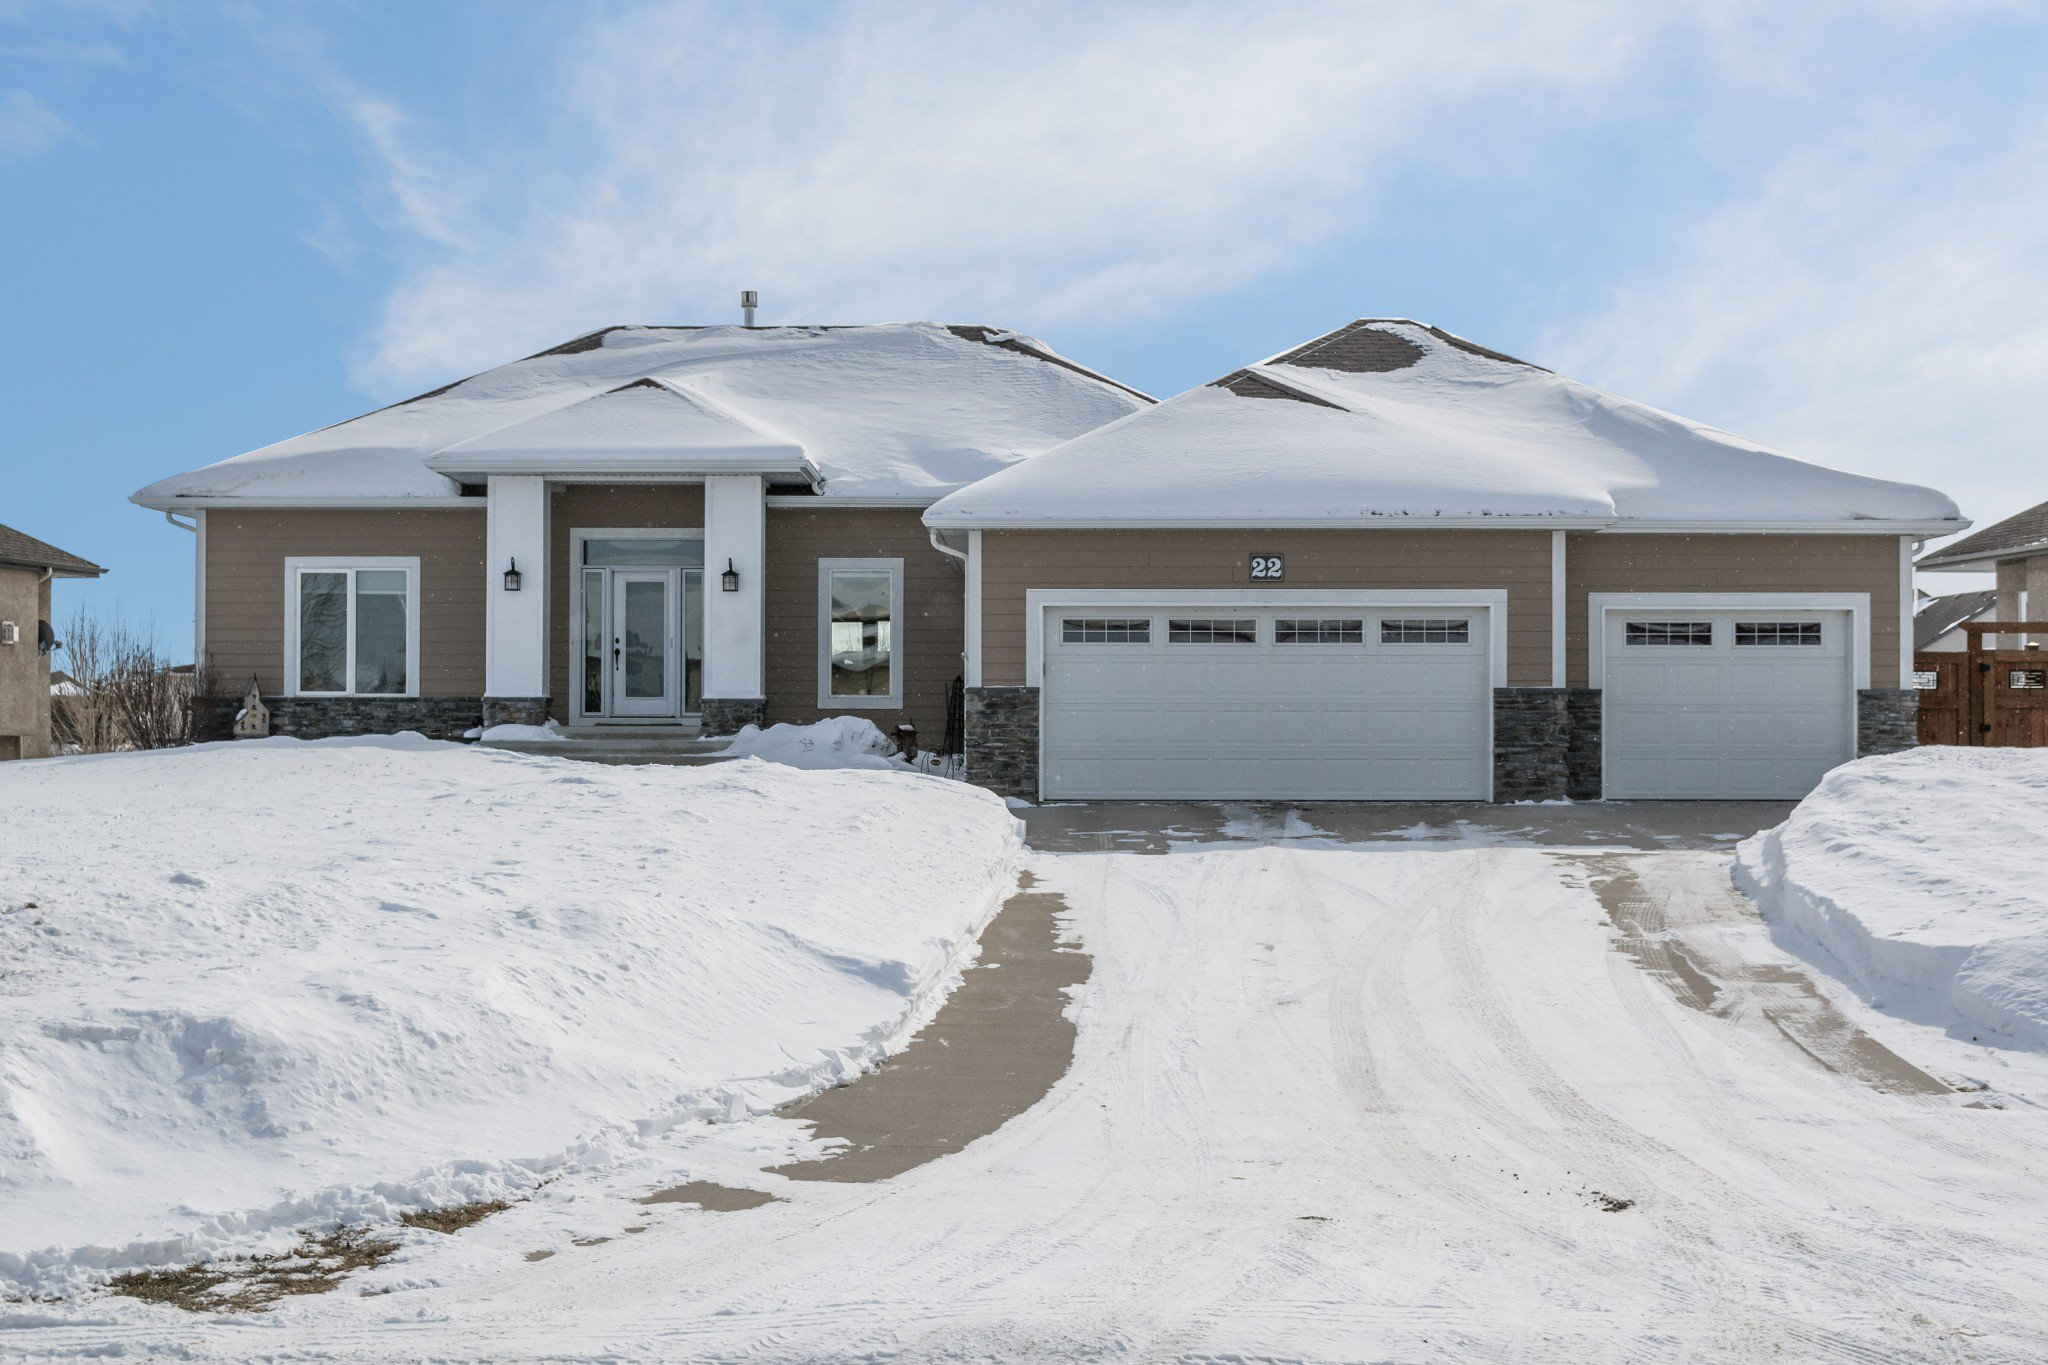 Main Photo: 22 Magnolia Drive: Oakbank Single Family Detached for sale (R04)  : MLS®# 190401